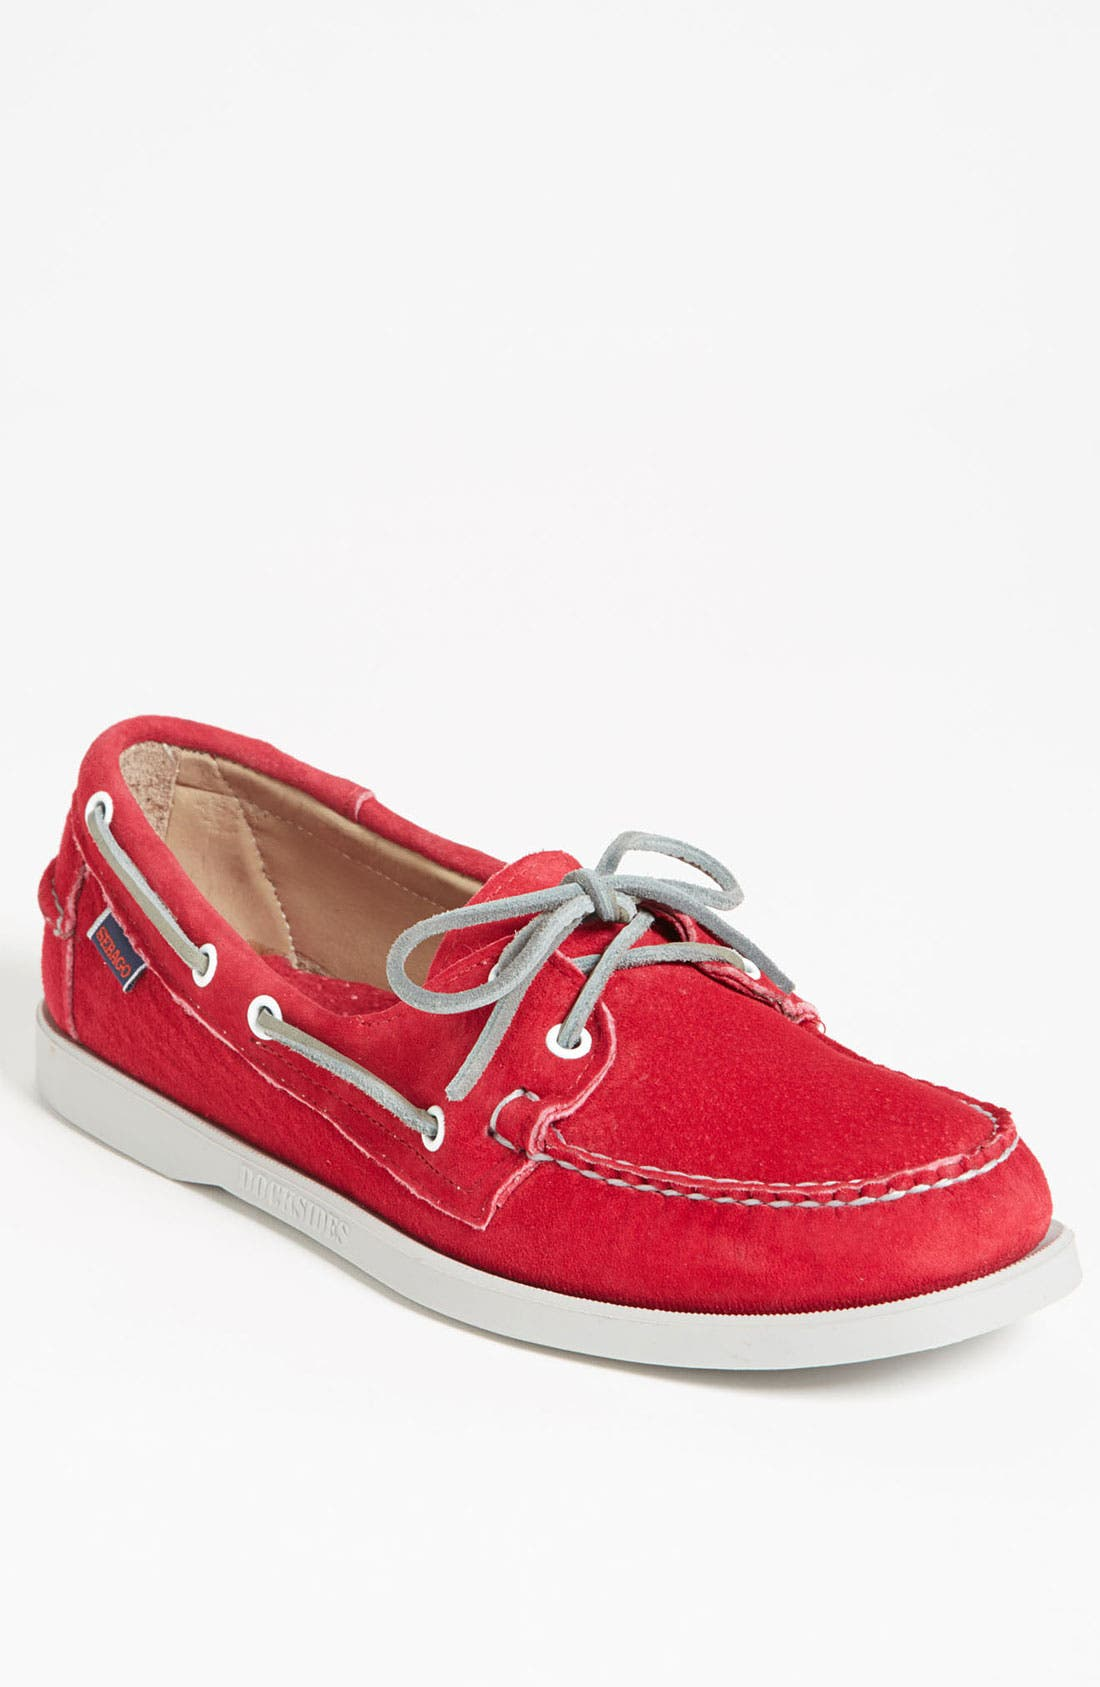 Alternate Image 1 Selected - Sebago 'Docksides®' Suede Boat Shoe